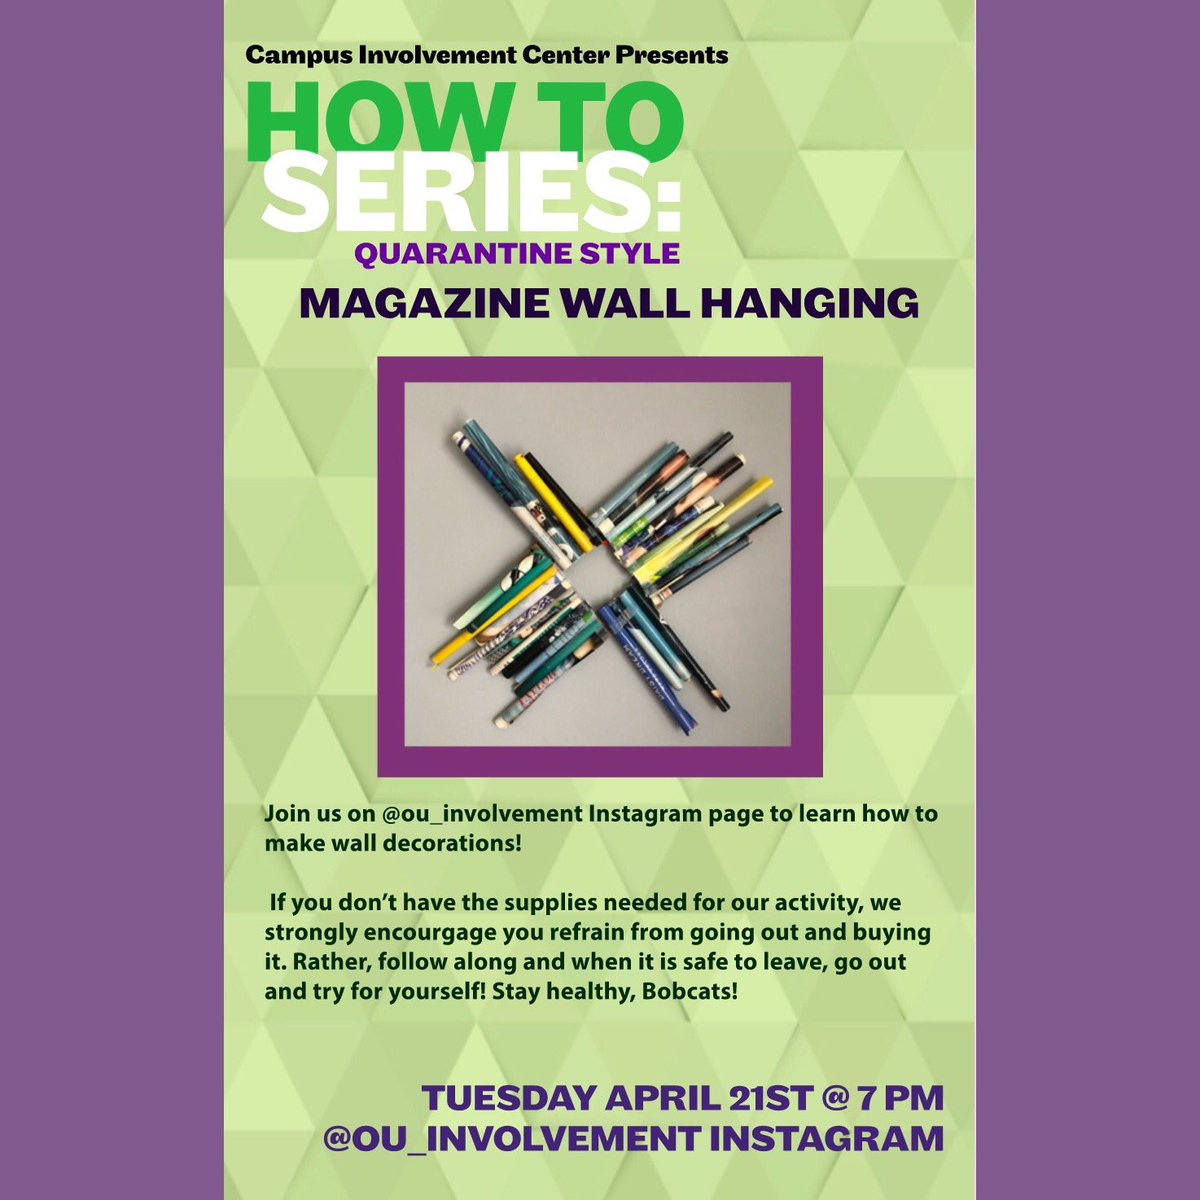 How To Tuesday is tonight! Check our instagram story at 7pm tonight for info on how to make magazine wall hangings! https://t.co/L5Ucq4y4Kh